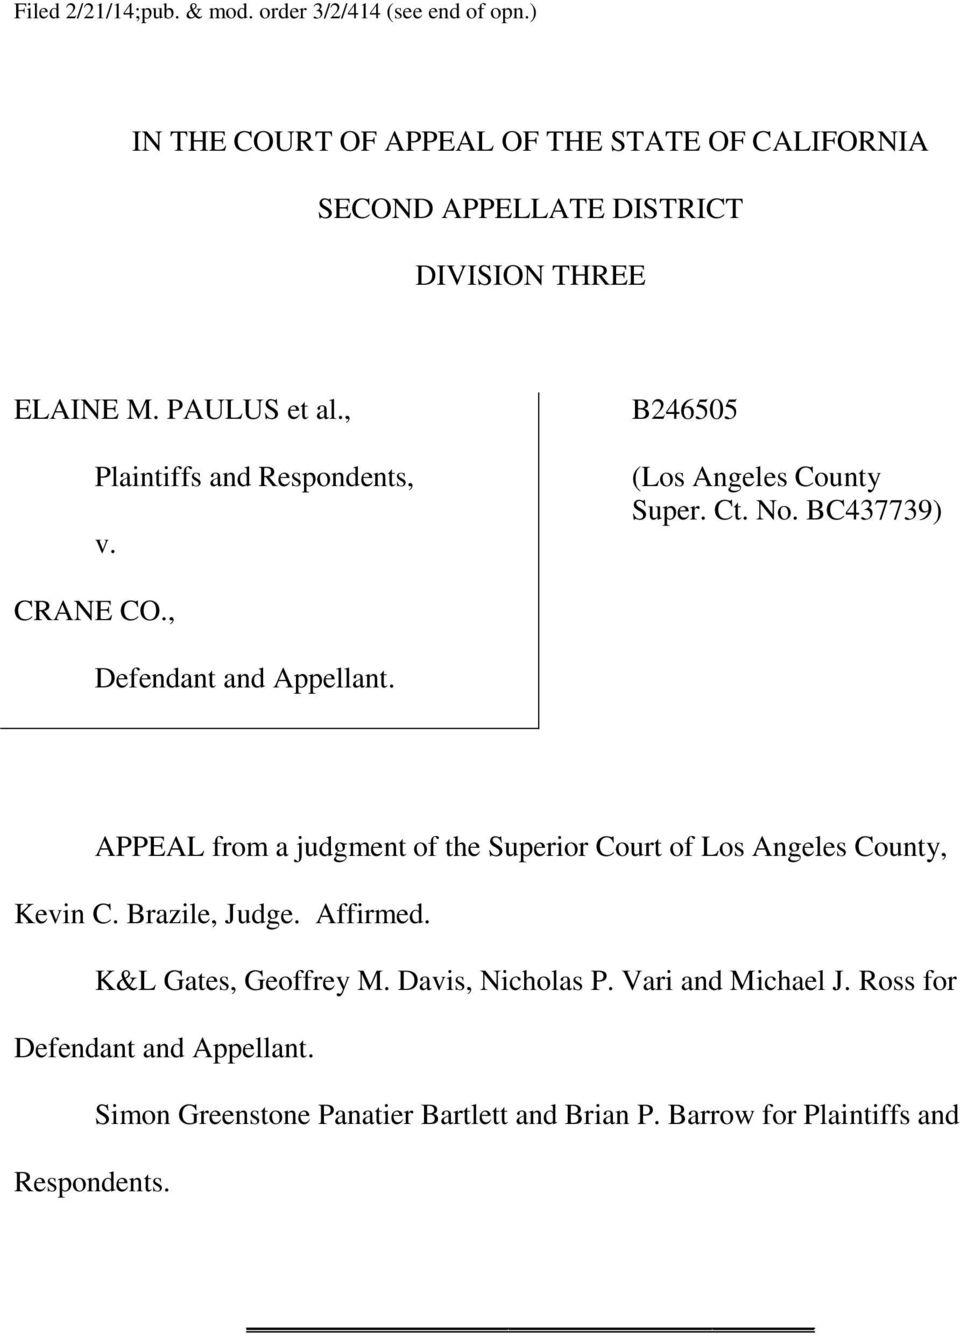 , Plaintiffs and Respondents, v. B246505 (Los Angeles County Super. Ct. No. BC437739) CRANE CO., Defendant and Appellant.